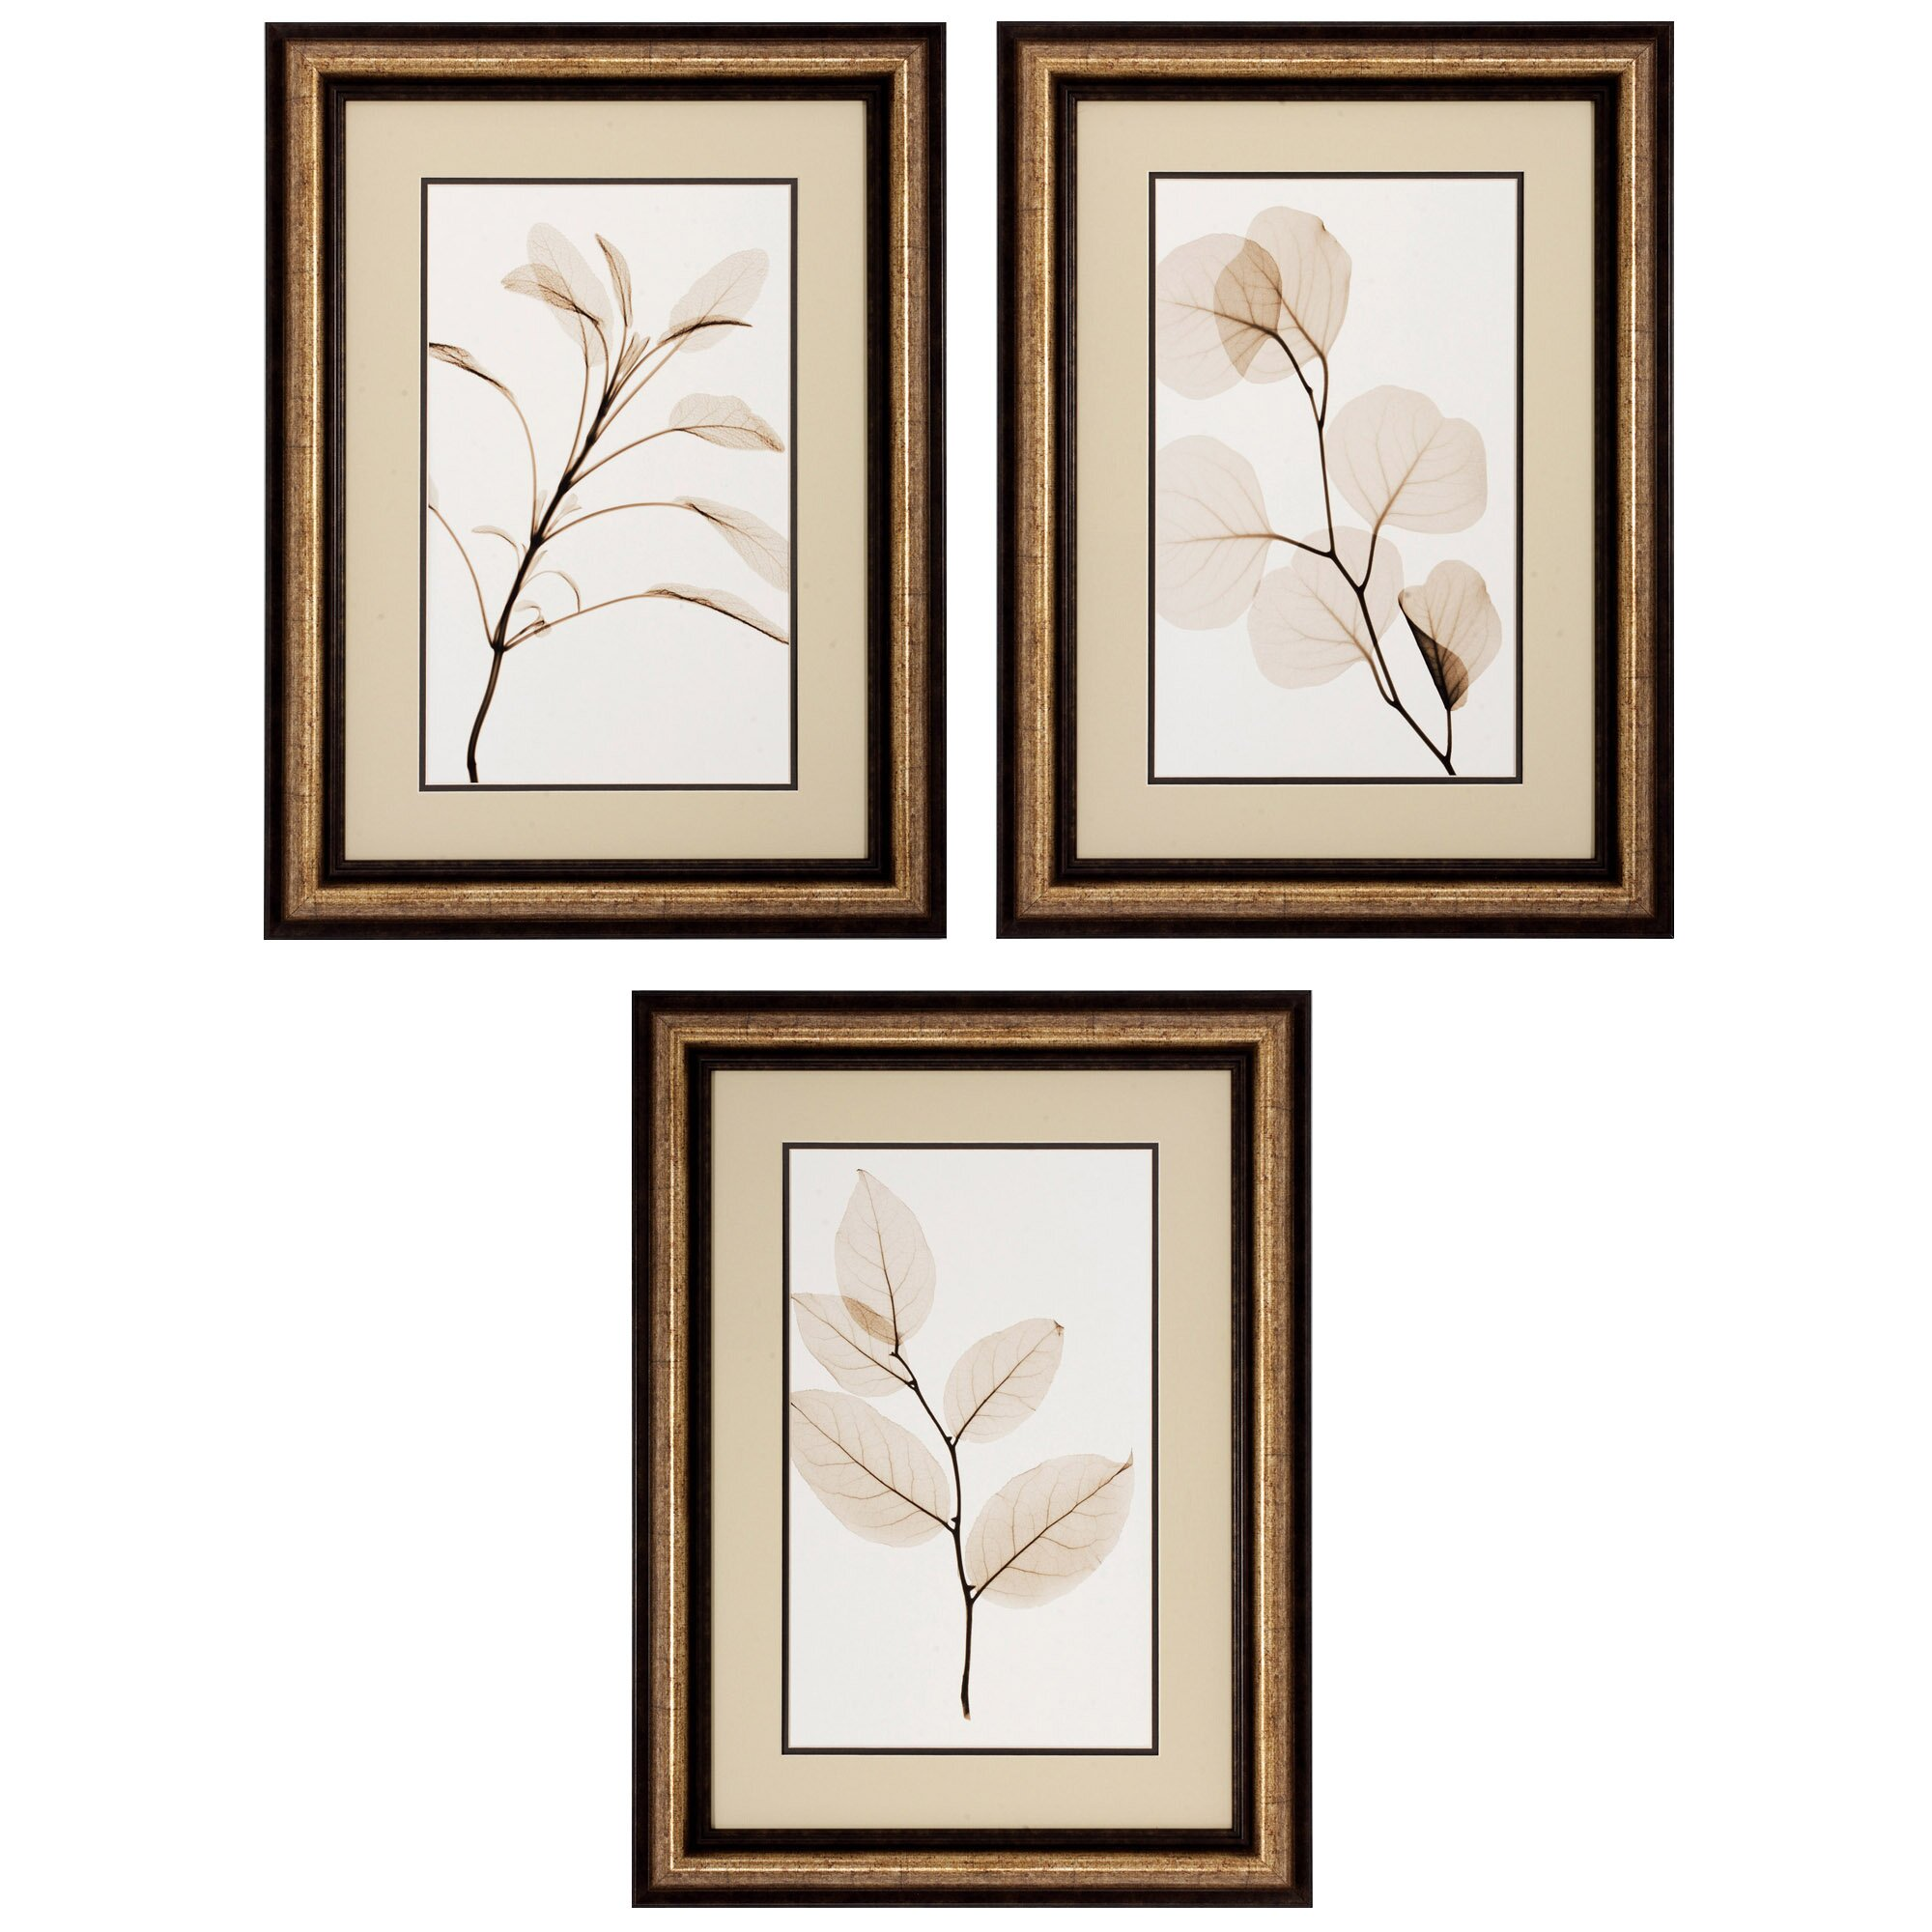 propac images sage salal eucalypt 3 piece framed graphic art set reviews wayfair. Black Bedroom Furniture Sets. Home Design Ideas